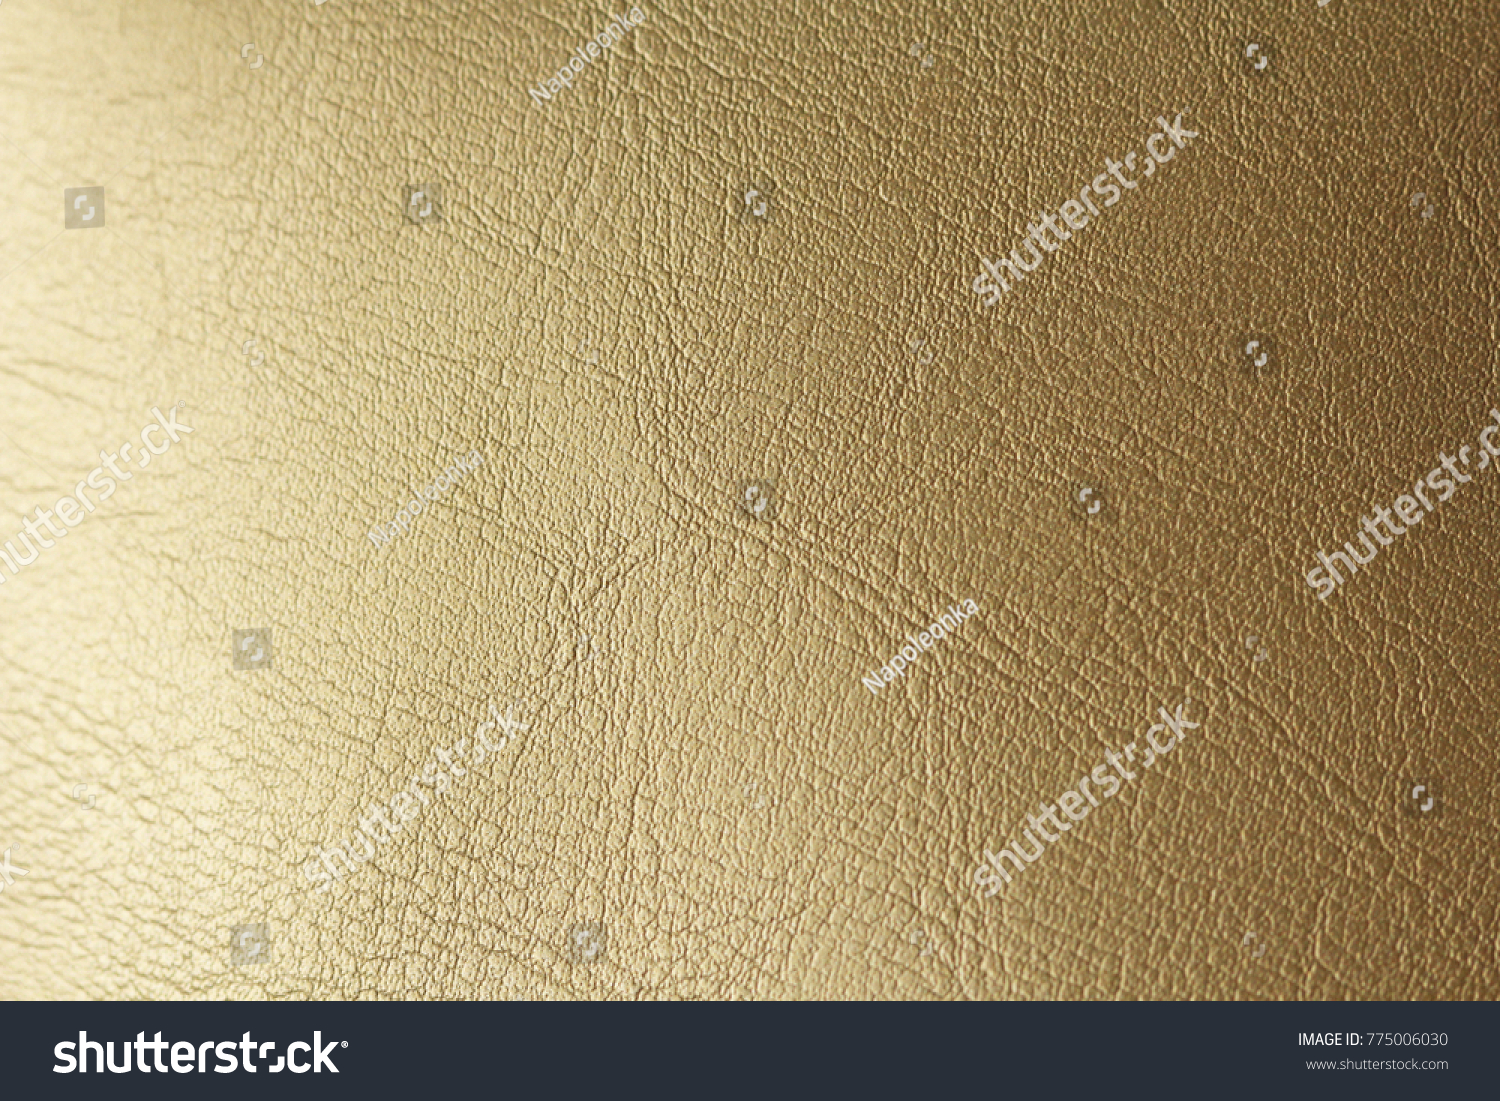 1ace468f9cd77f Gold Gradient Background. Gold or Bronze Natural Leather Background. Shiny  yellow leaf gold foil